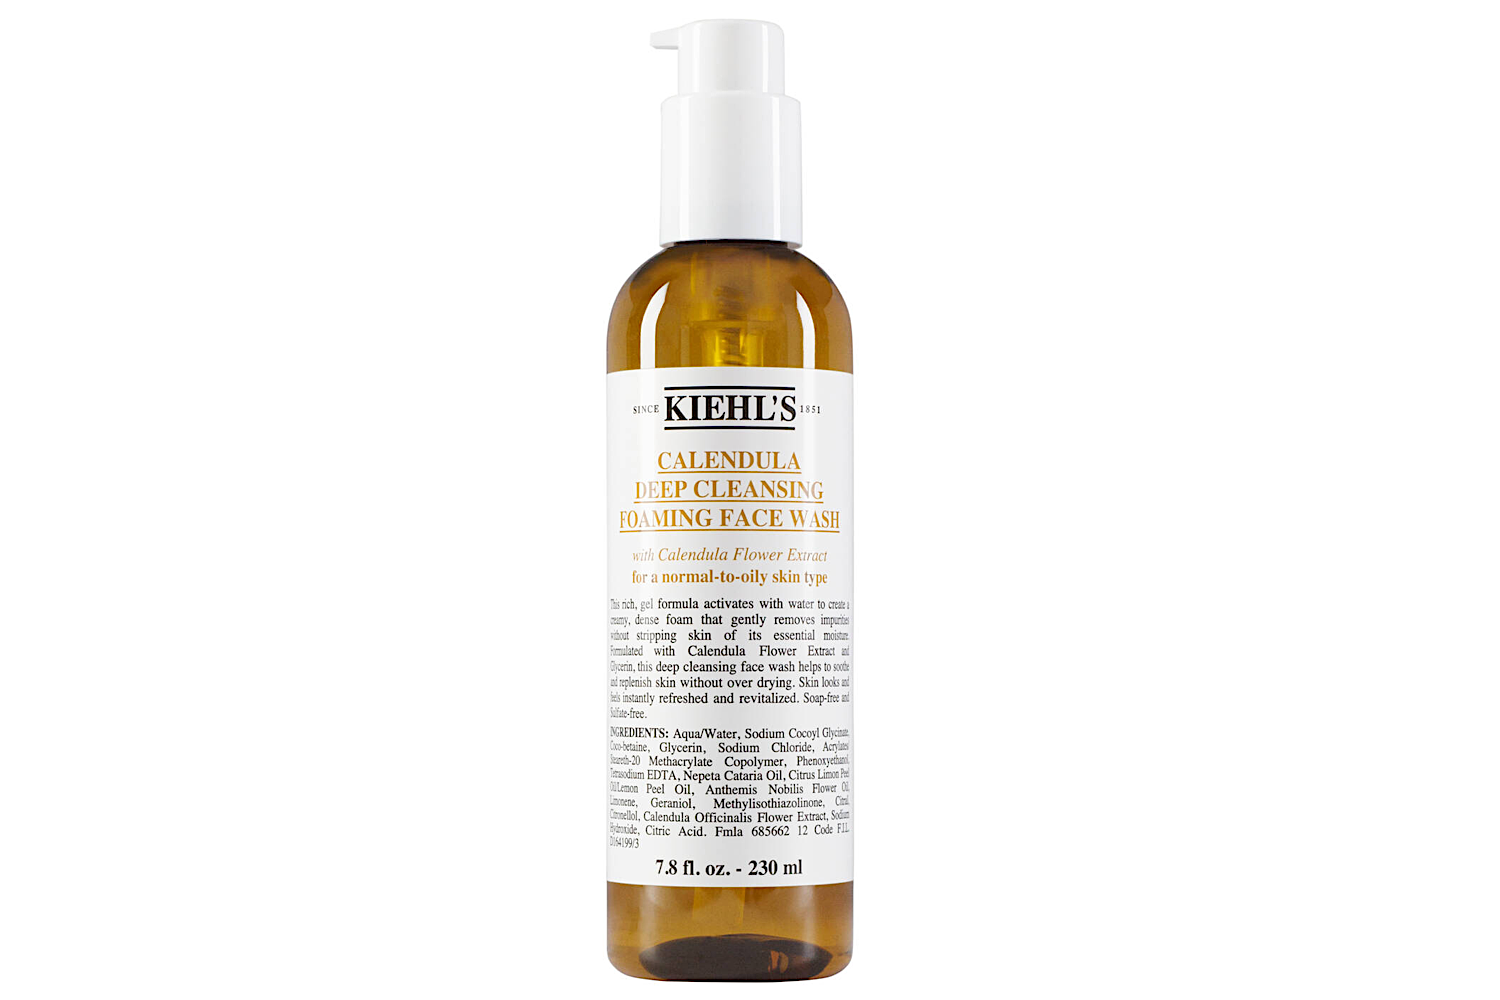 Calendula Deep Cleansing Foaming Face Wash - by Kiehl's - WORDS on BEAUTY